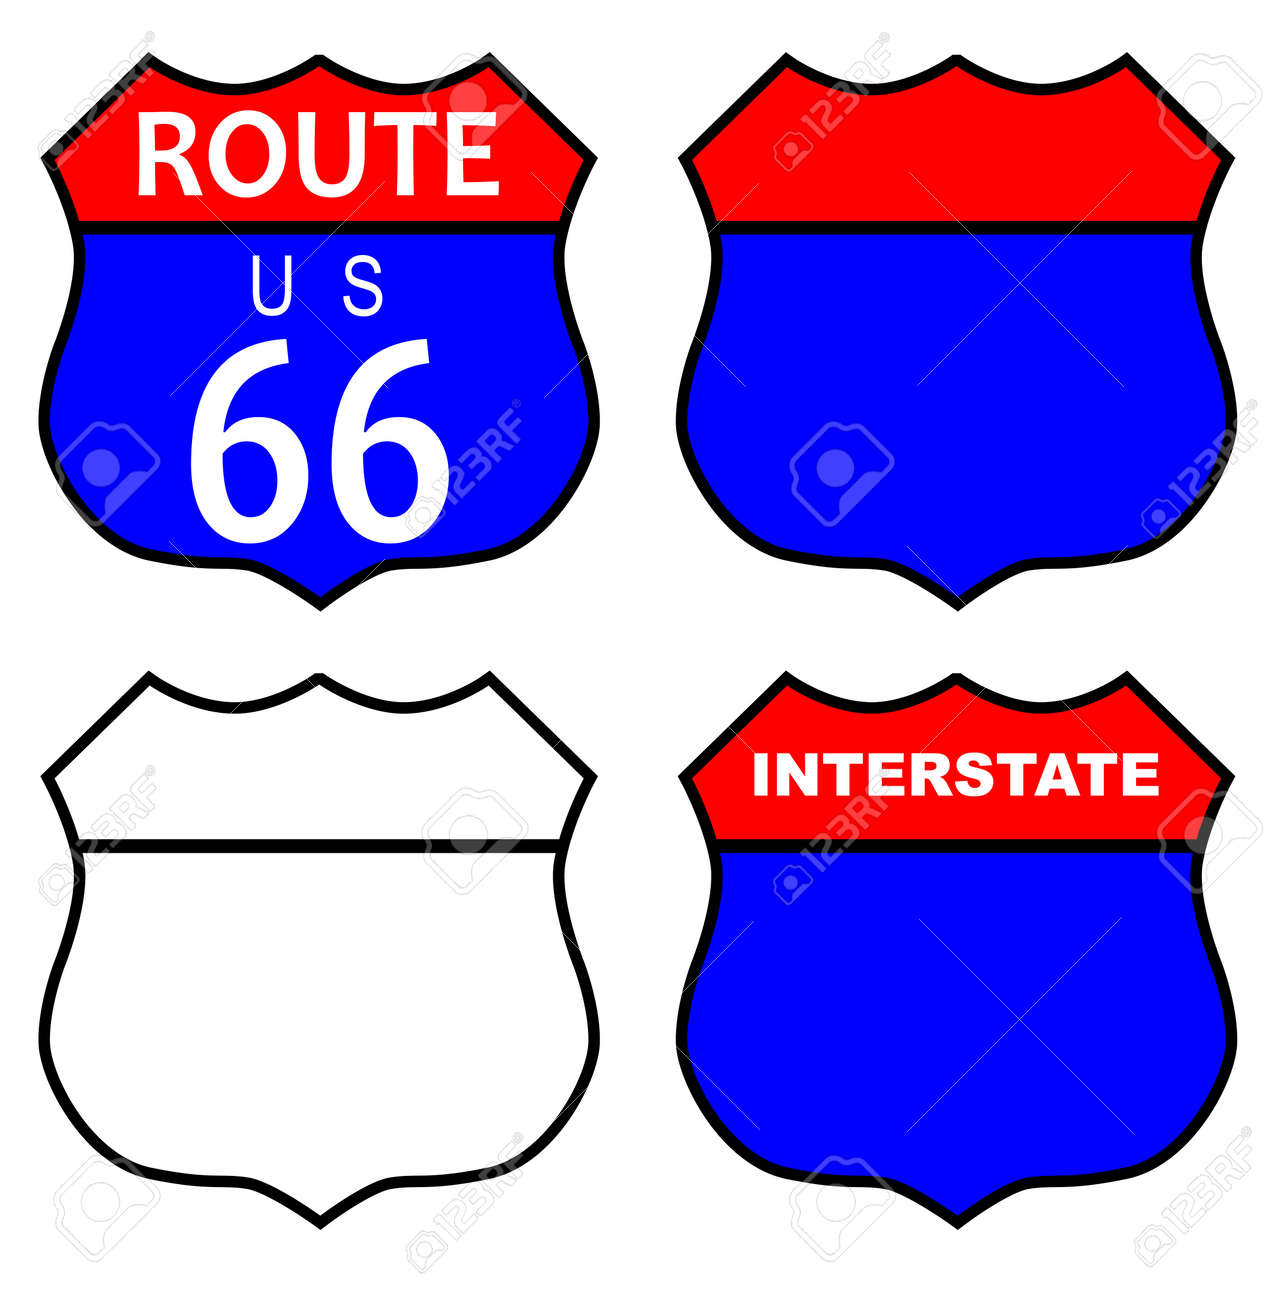 Route 66 Traffic Sign With Template And Interstate Sign Over ...